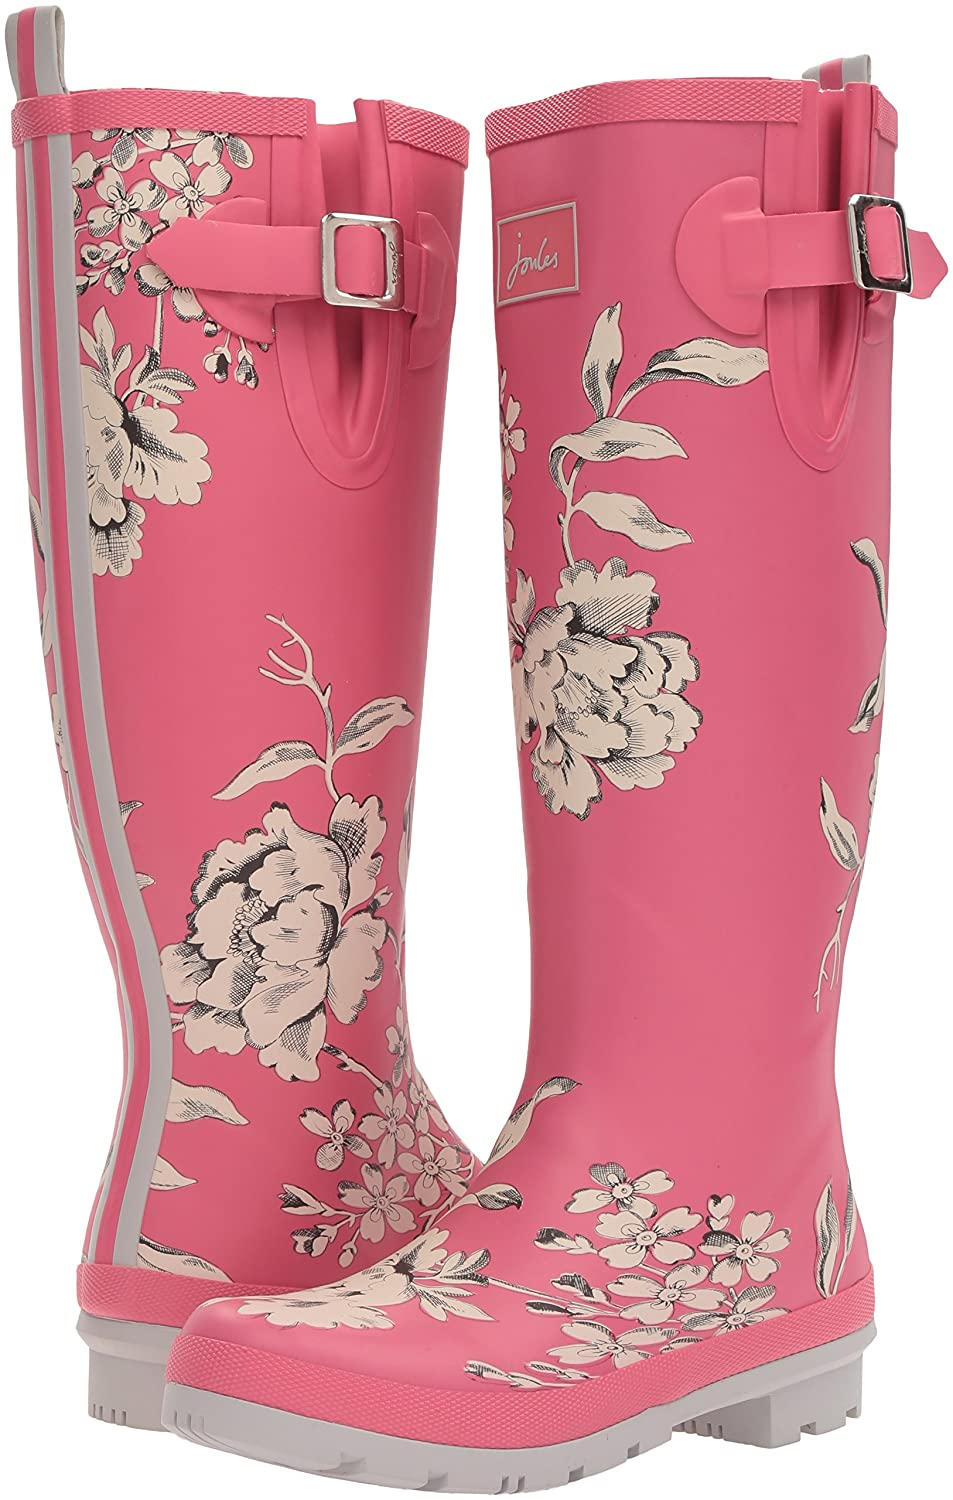 Joules Boot Women's Welly Print Rain Boot Joules B015PIFMG8 10 B(M) US|True Pink Floral 5c1e2f